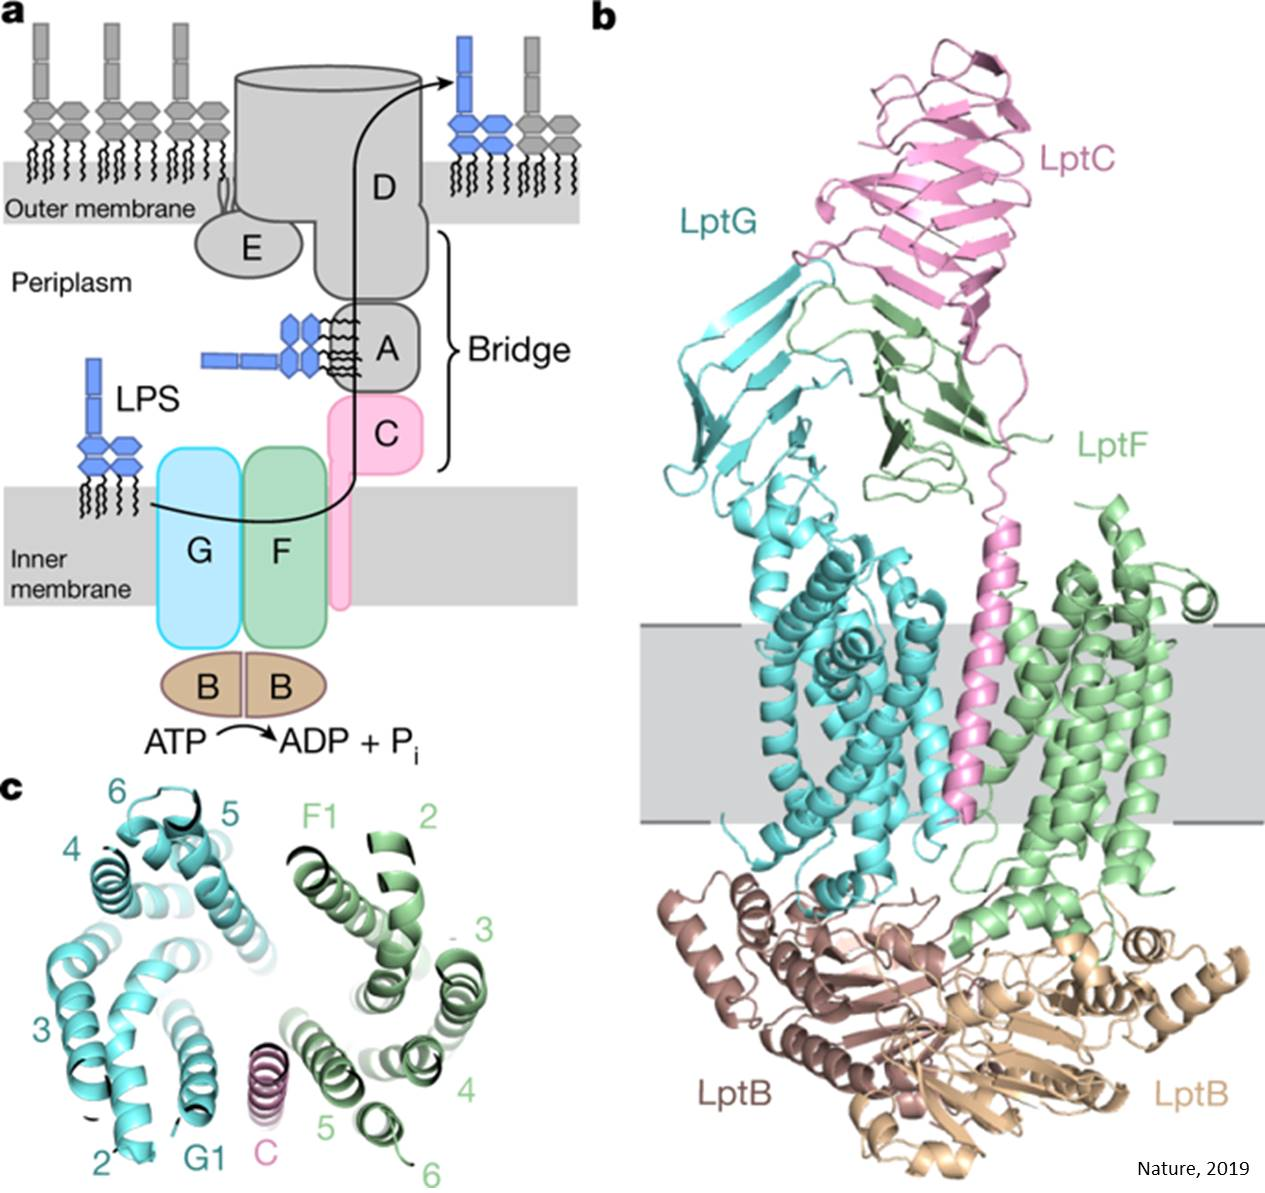 How the lipopolysaccharide (LPS) transported to the bacterial surface